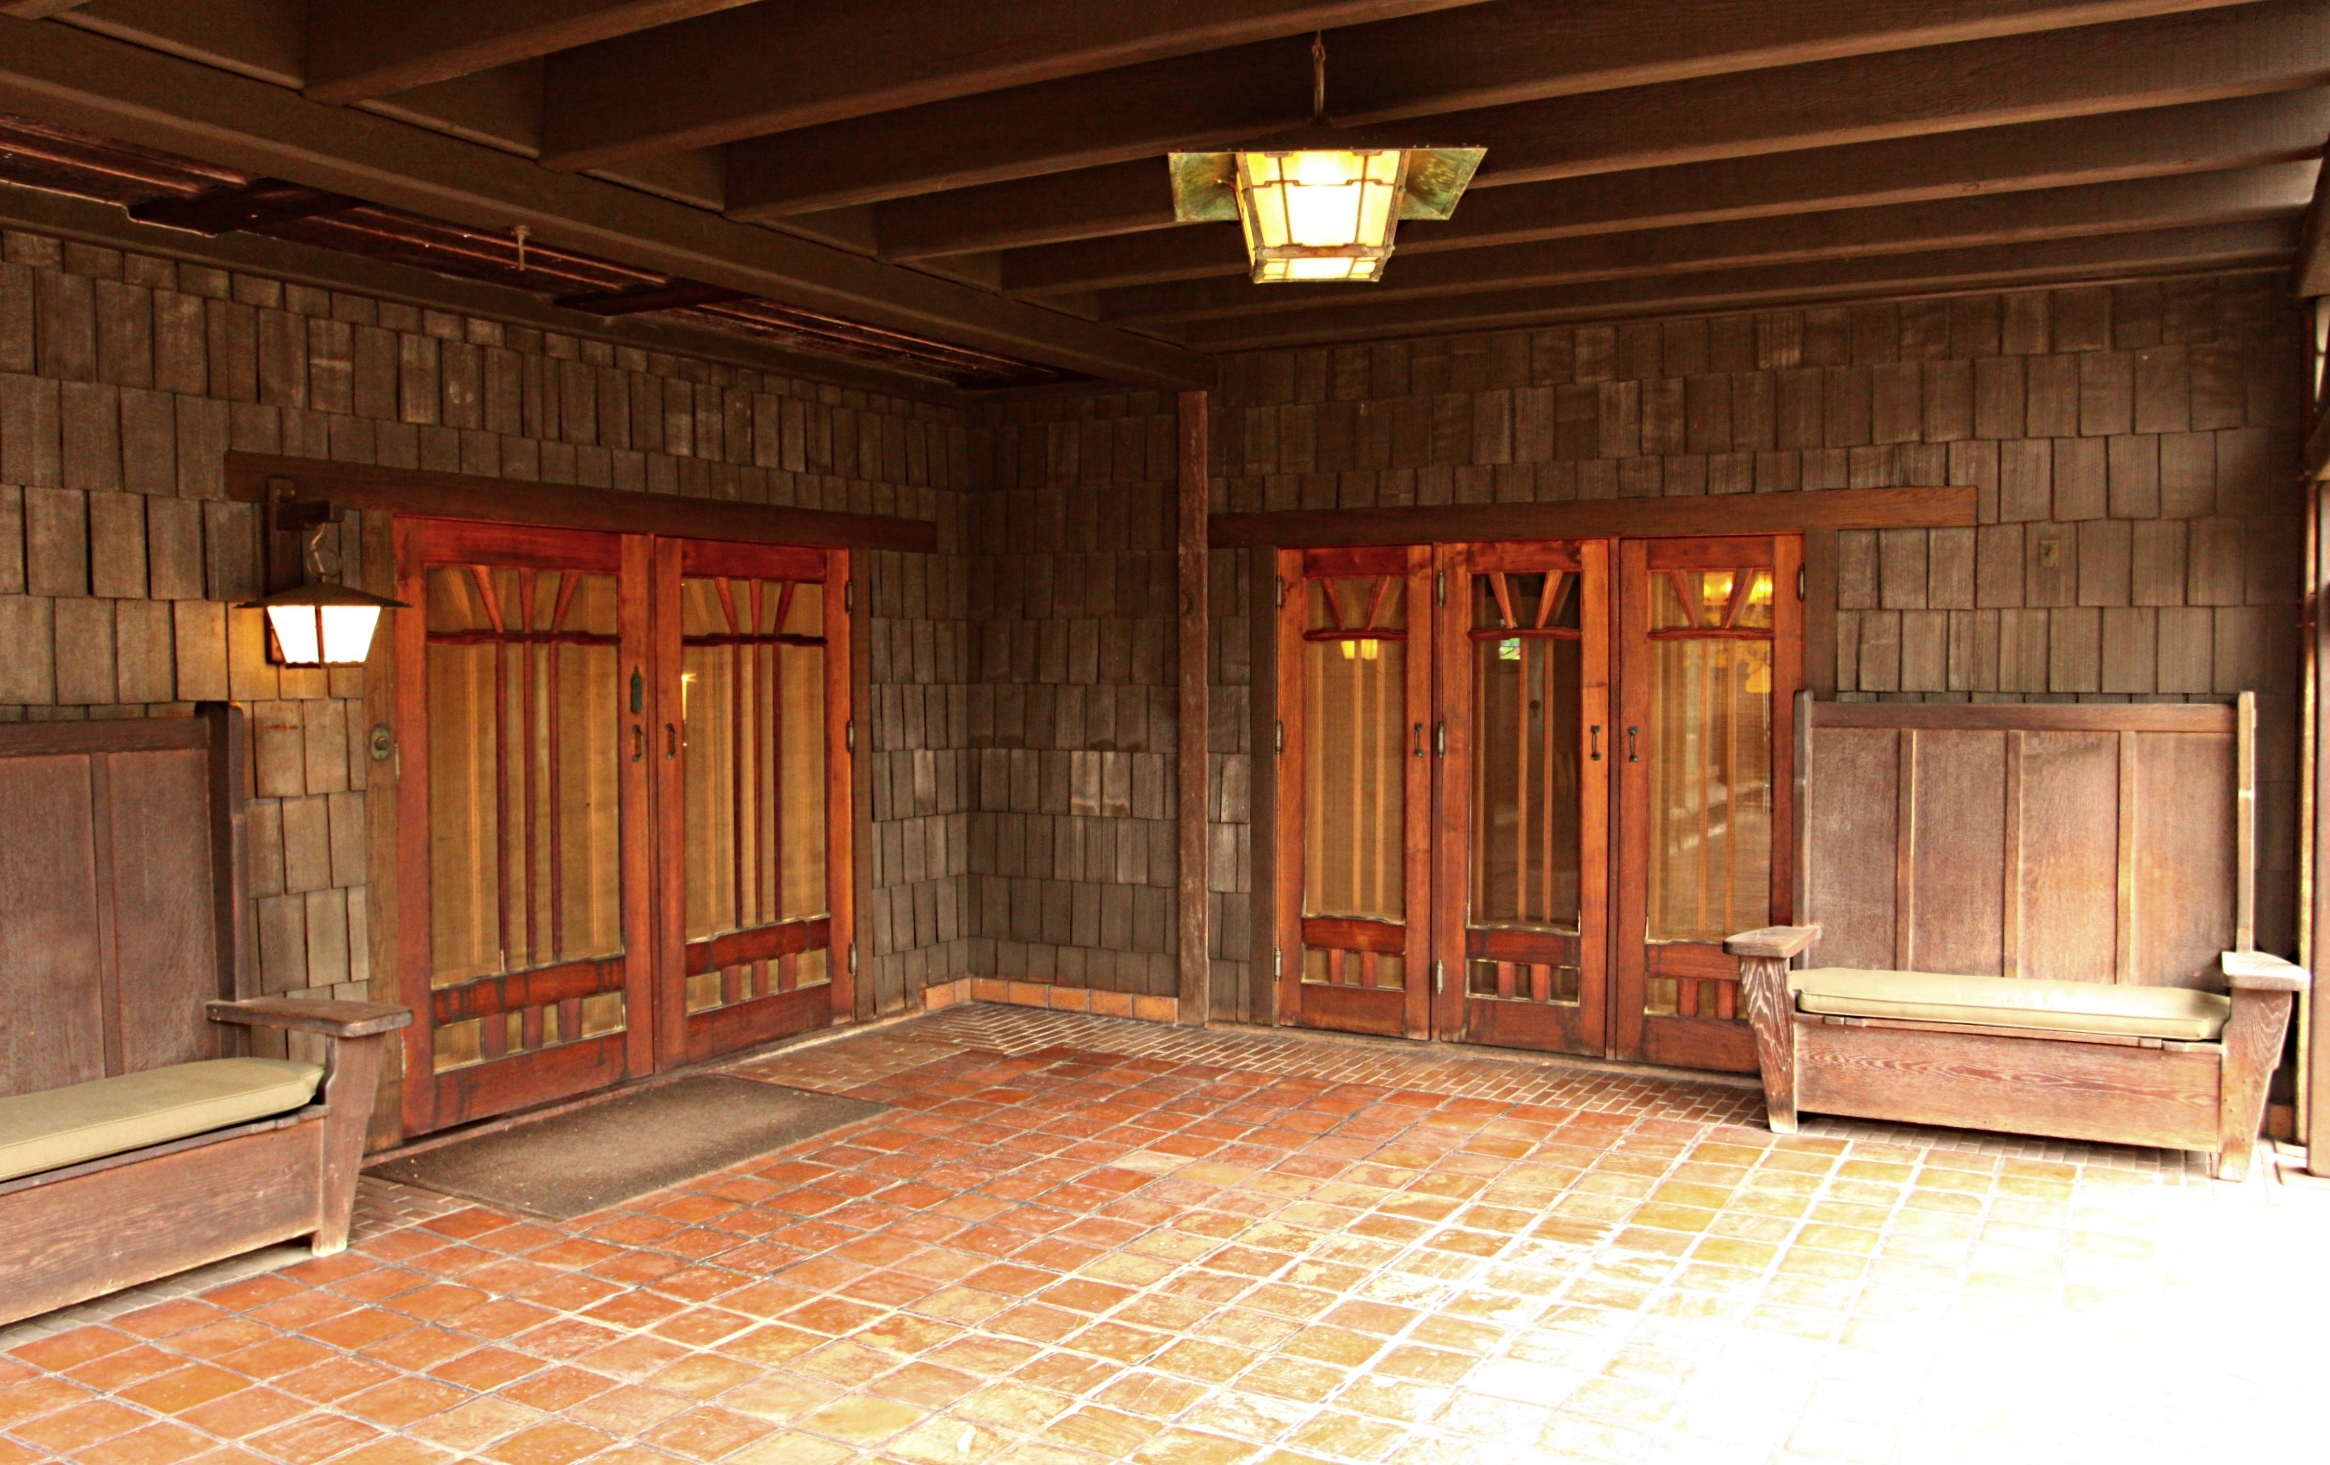 A Pilgrimage To The Gamble House The Ultimate Bungalow Part I The Exteri